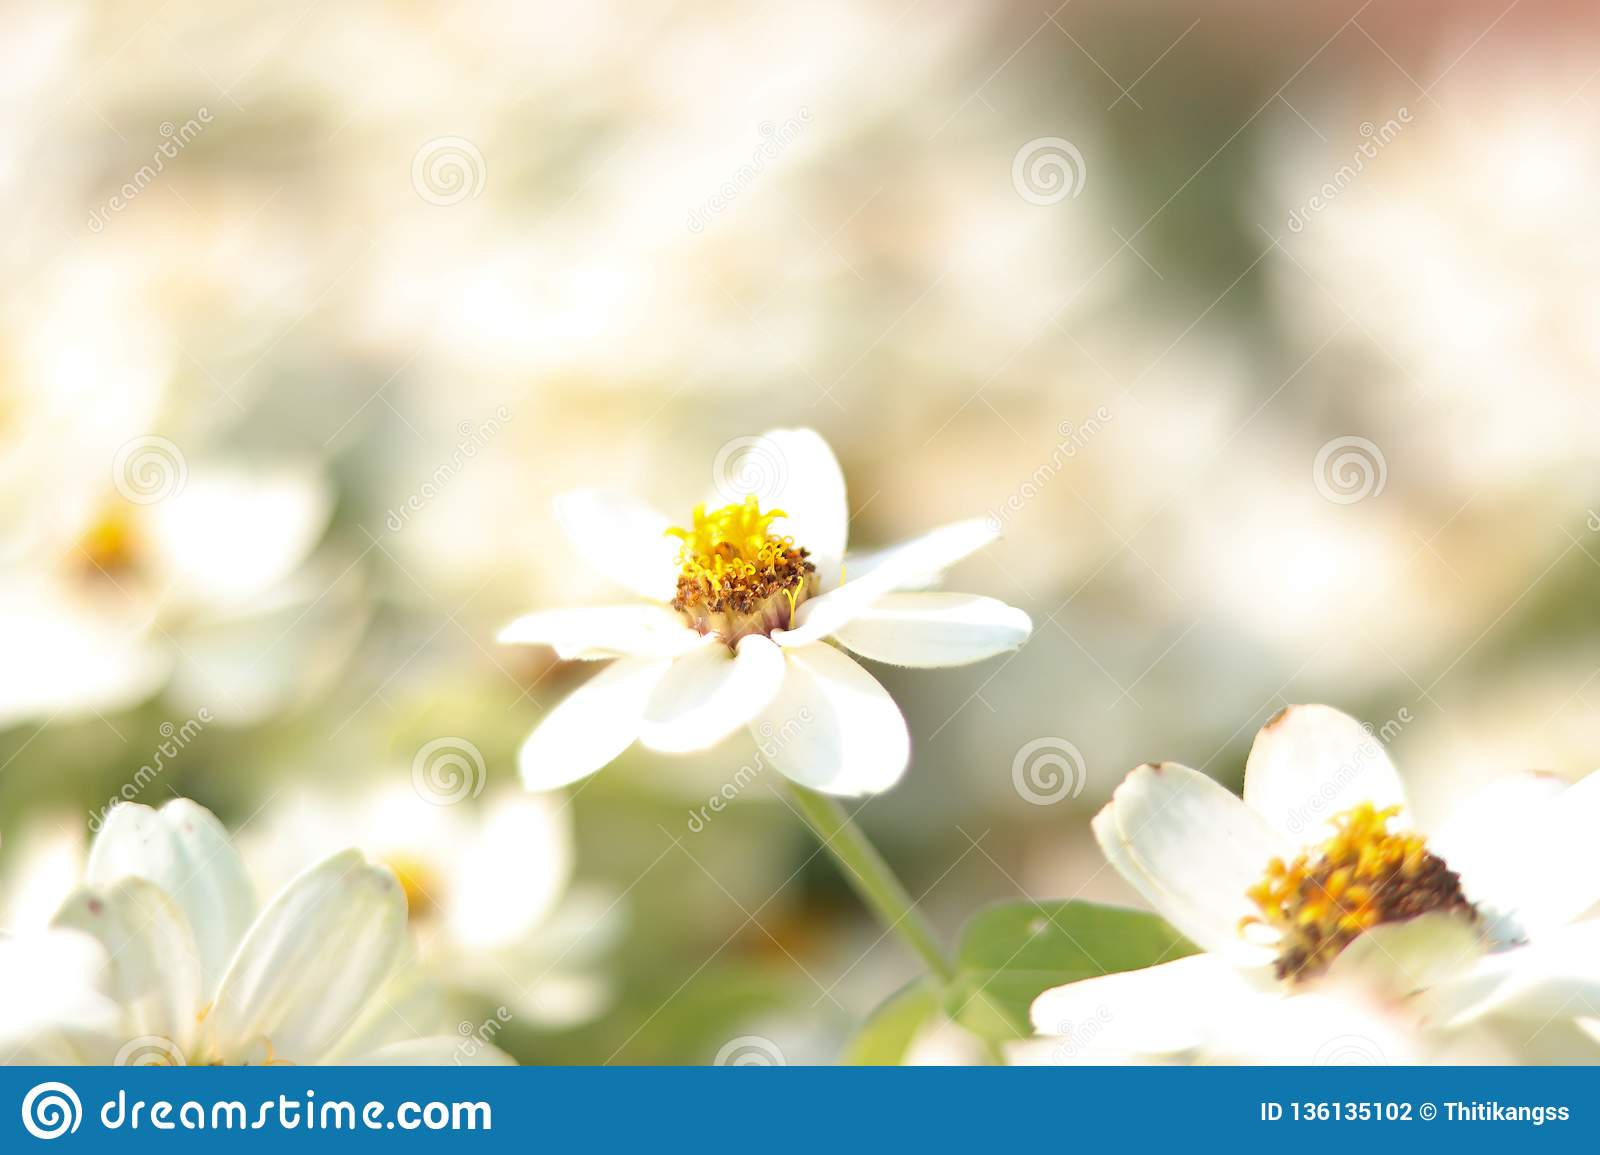 Closeup white flower on bulr white flowers background. - image